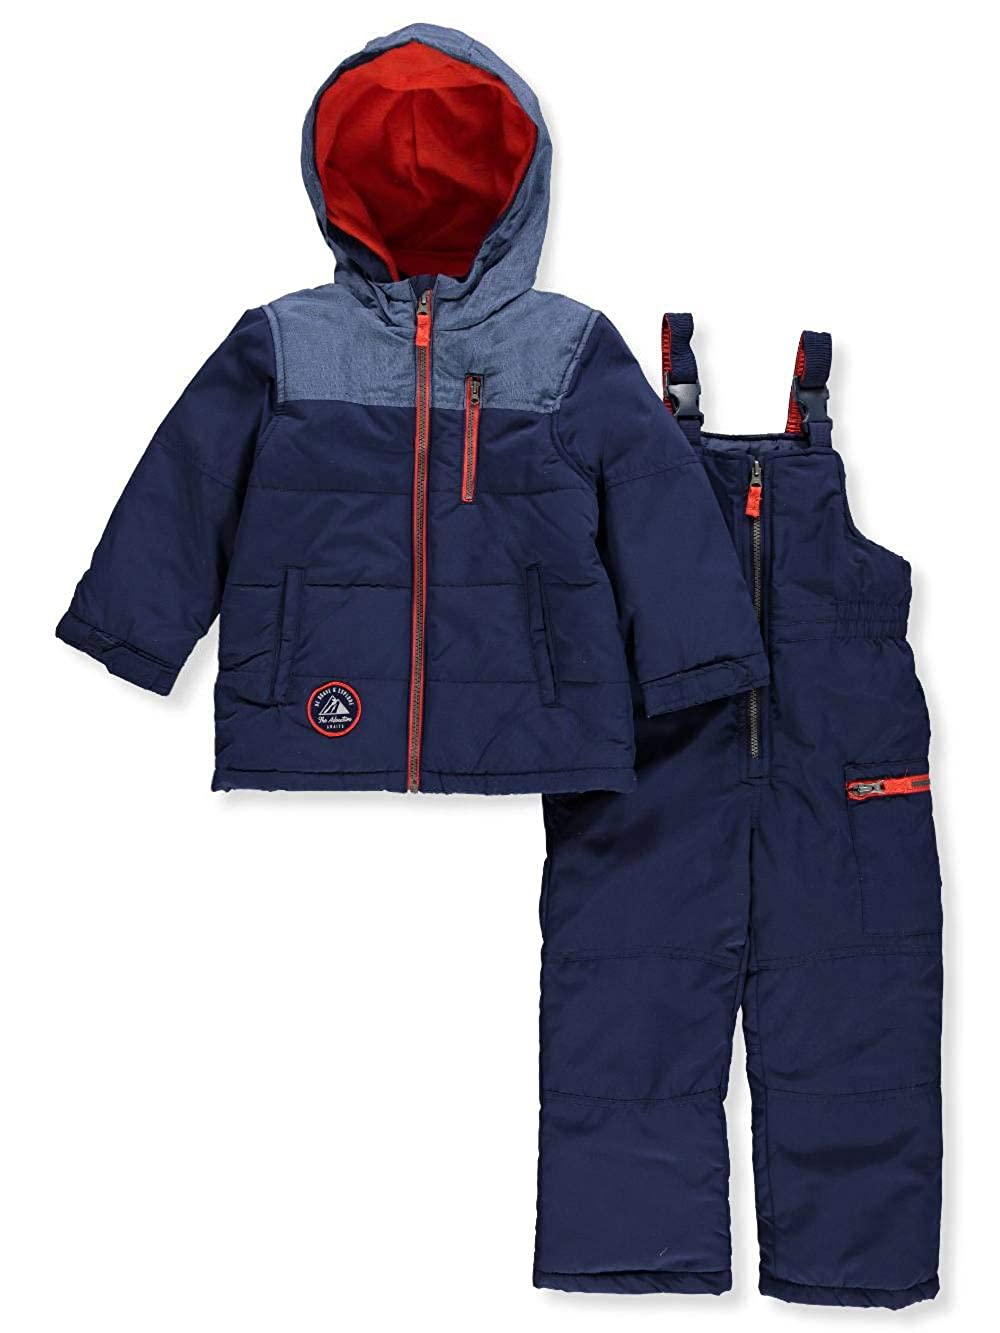 Carter's Boys' 2-Piece Snowsuit Carter' s